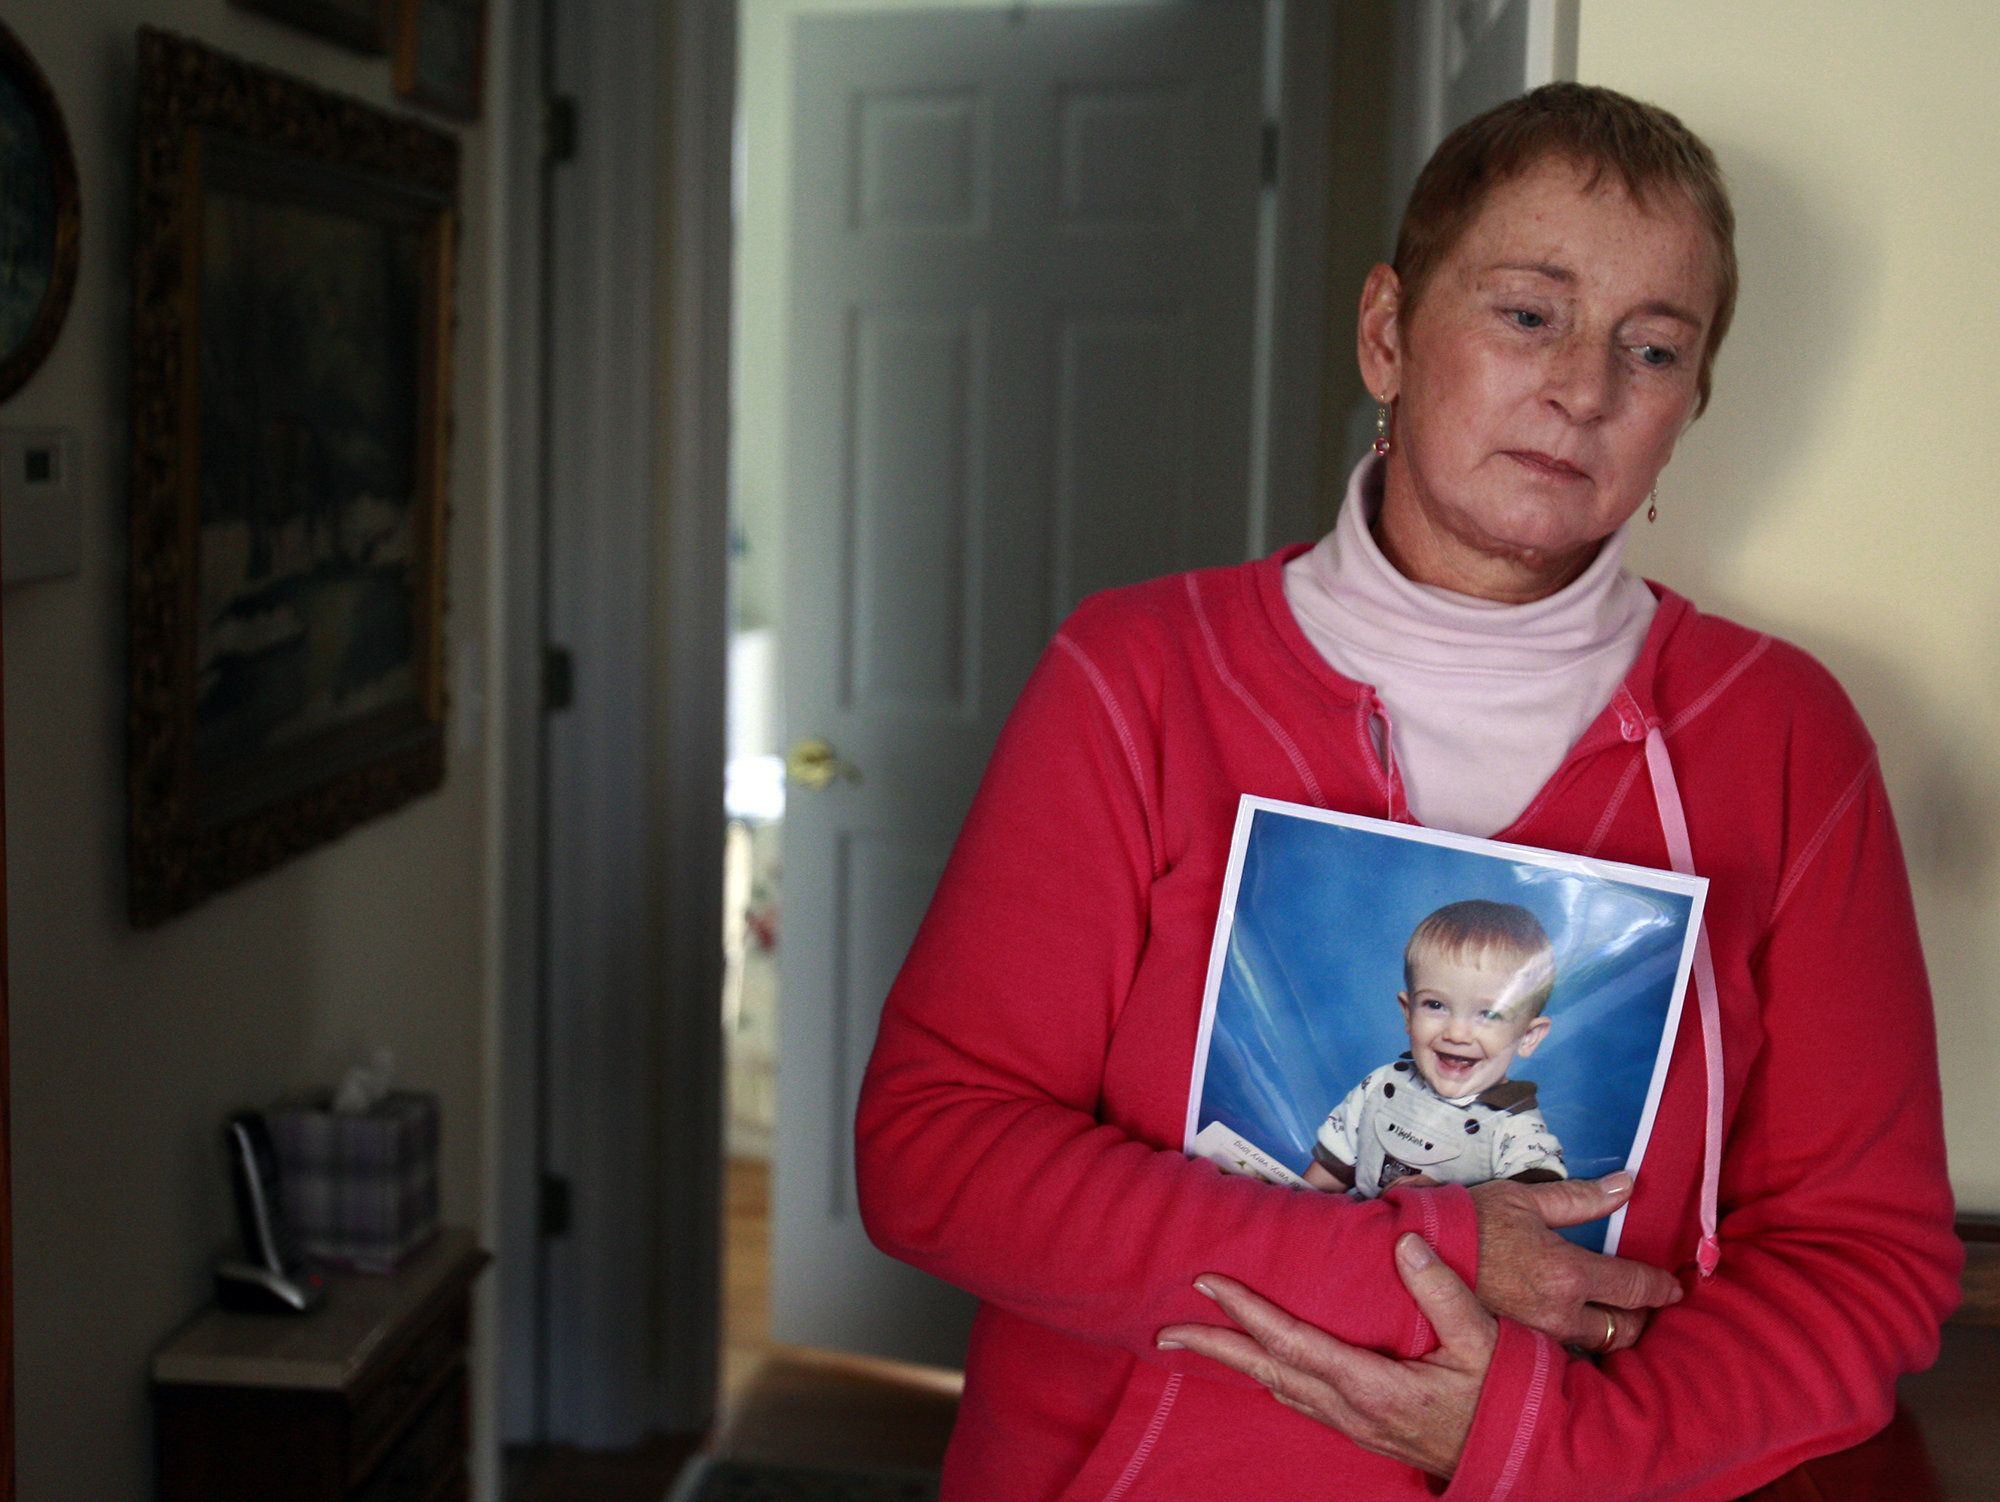 Alana Anderson, mother of Amy Fry-Pitzen and grandmother of Timmothy Pitzen, holding a photograph of her grandson at her home in Antioch, Ill., on November 16, 2011. (Stacey Wescott/Chicago Tribune/TNS via Getty Images)